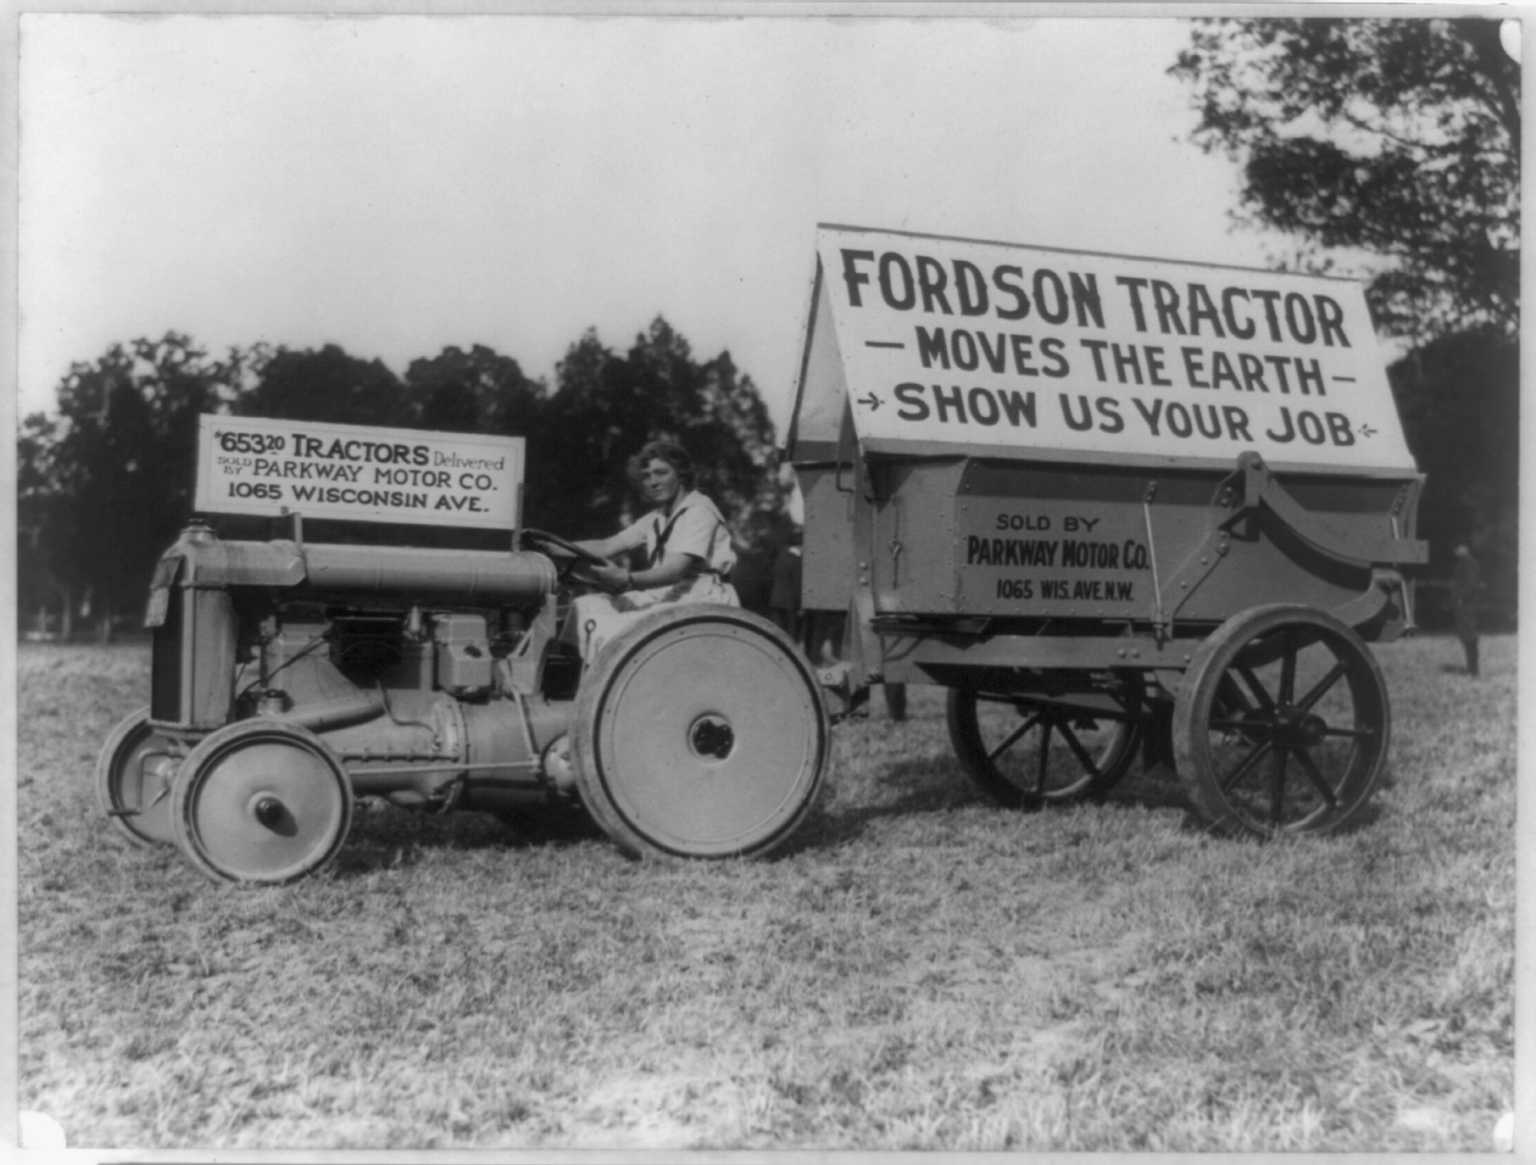 Fordson tractor photo - 1